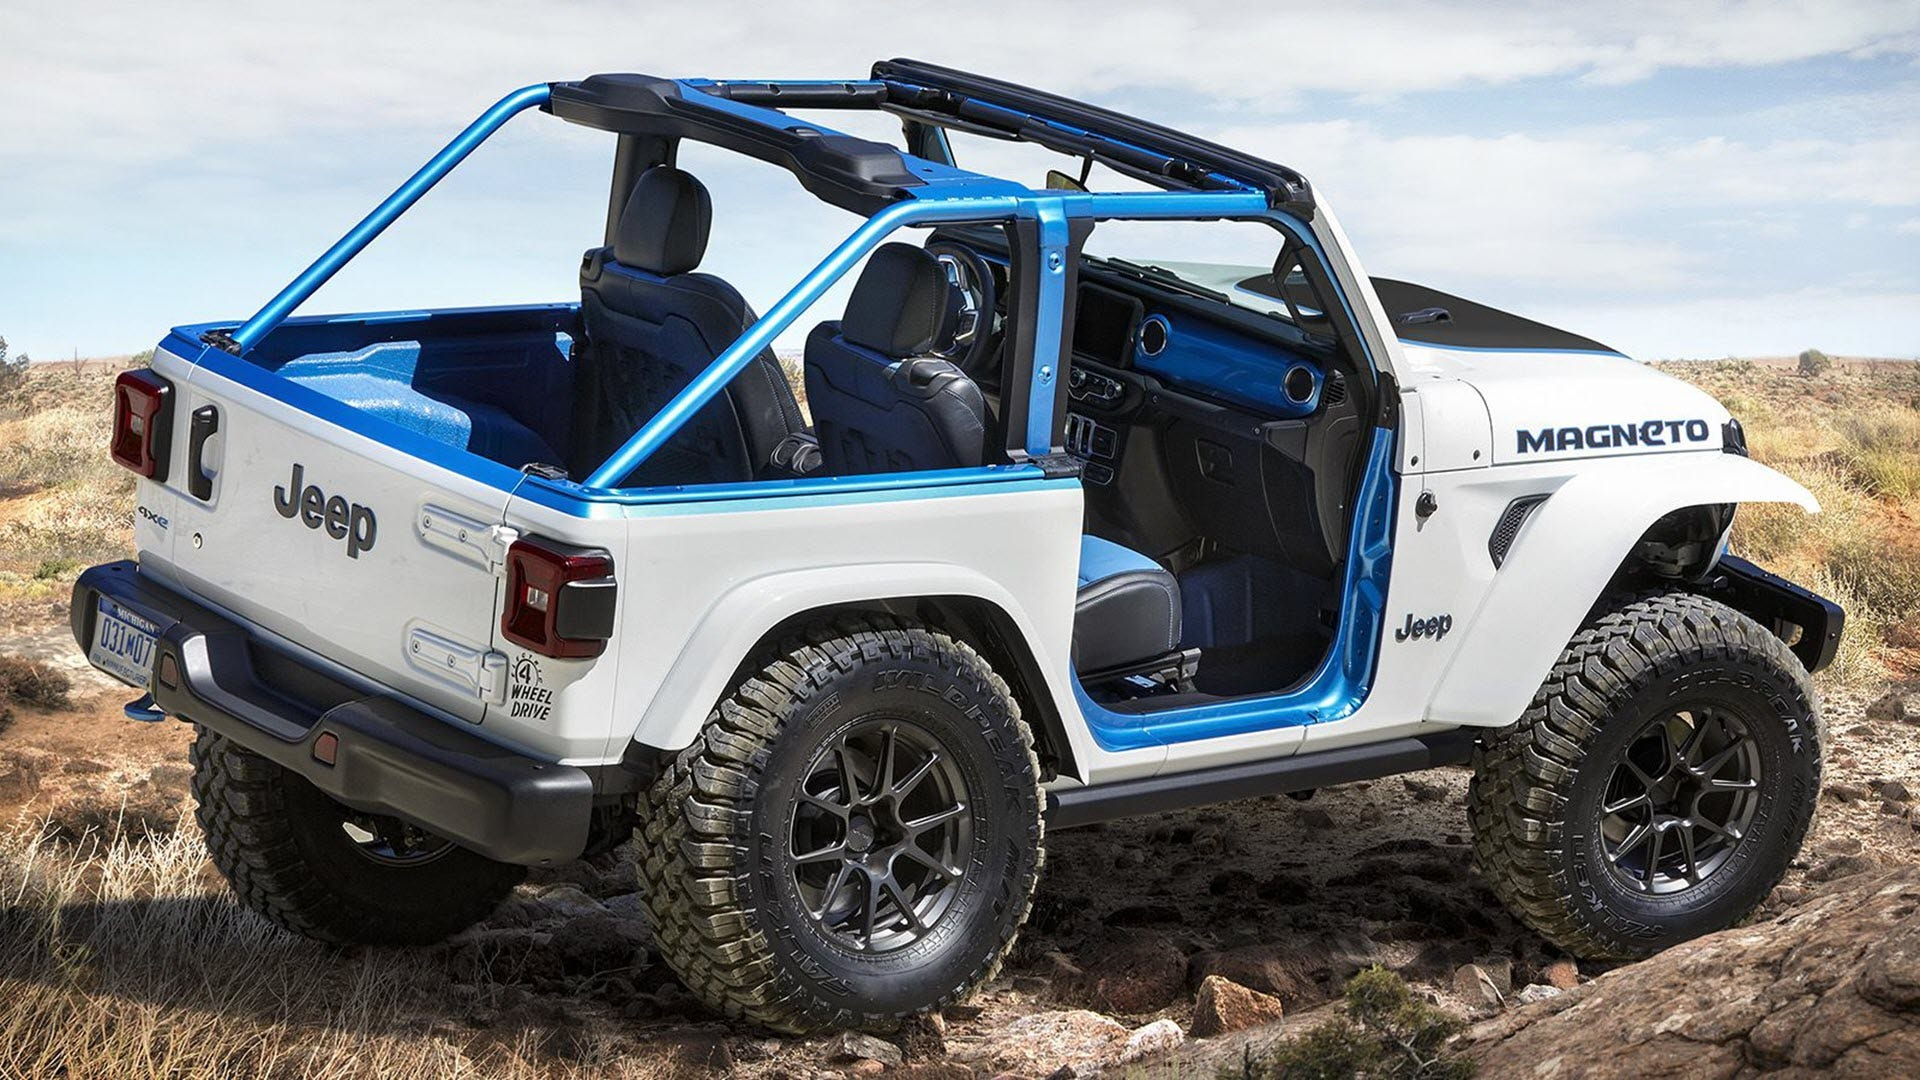 Another view of the Wrangler EV with blue trim styles.